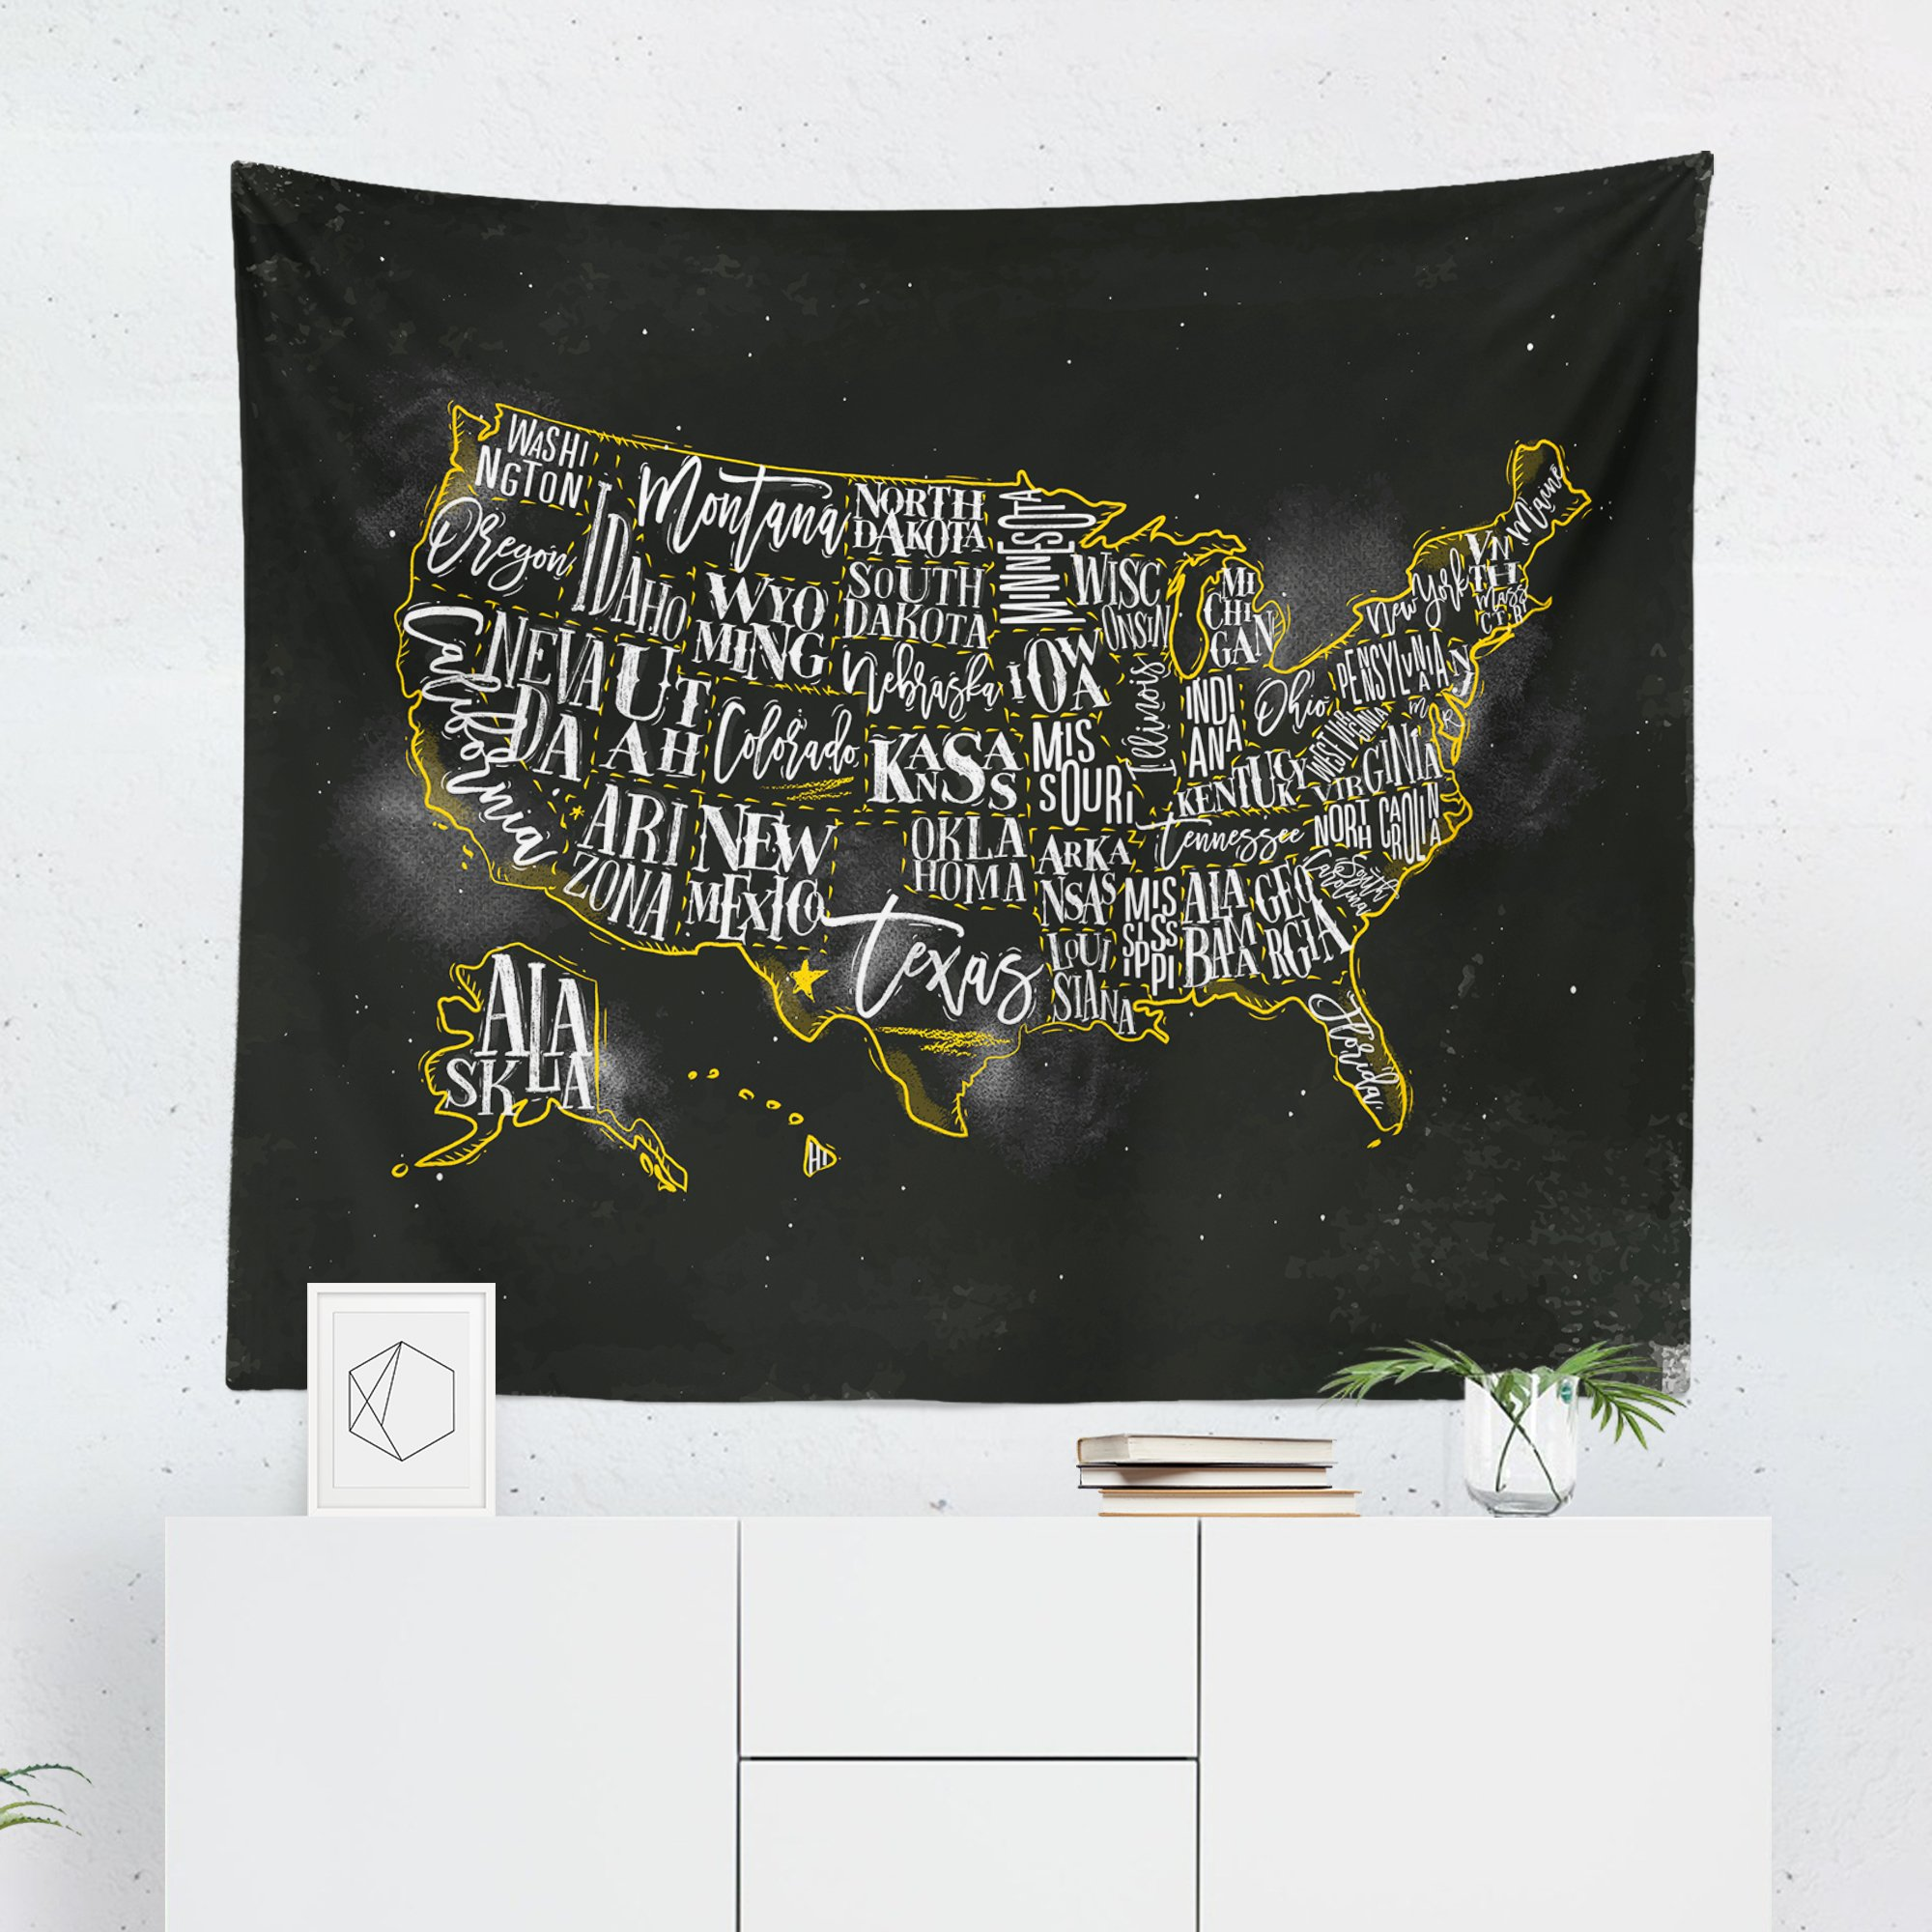 United States Map Tapestry - USA Maps America US Wall Tapestries Hanging Décor Bedroom Dorm College Living Room Home Art Print Decoration Decorative - Printed in the USA - Small Medium Large Sizes